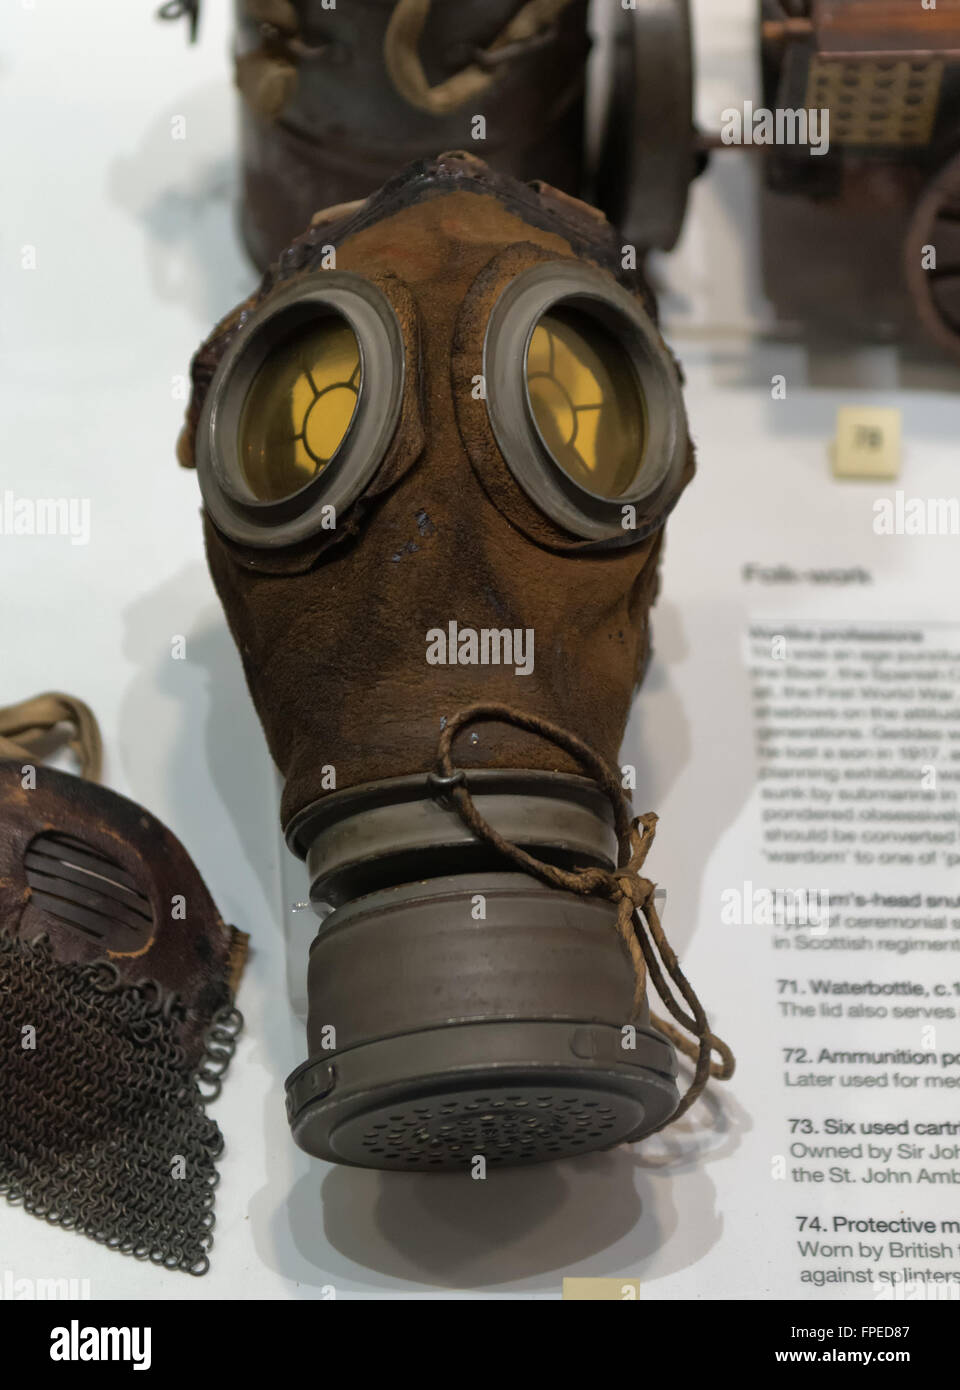 Single poisonous gas mask for soldier with other objects on display in case at museum - Stock Image